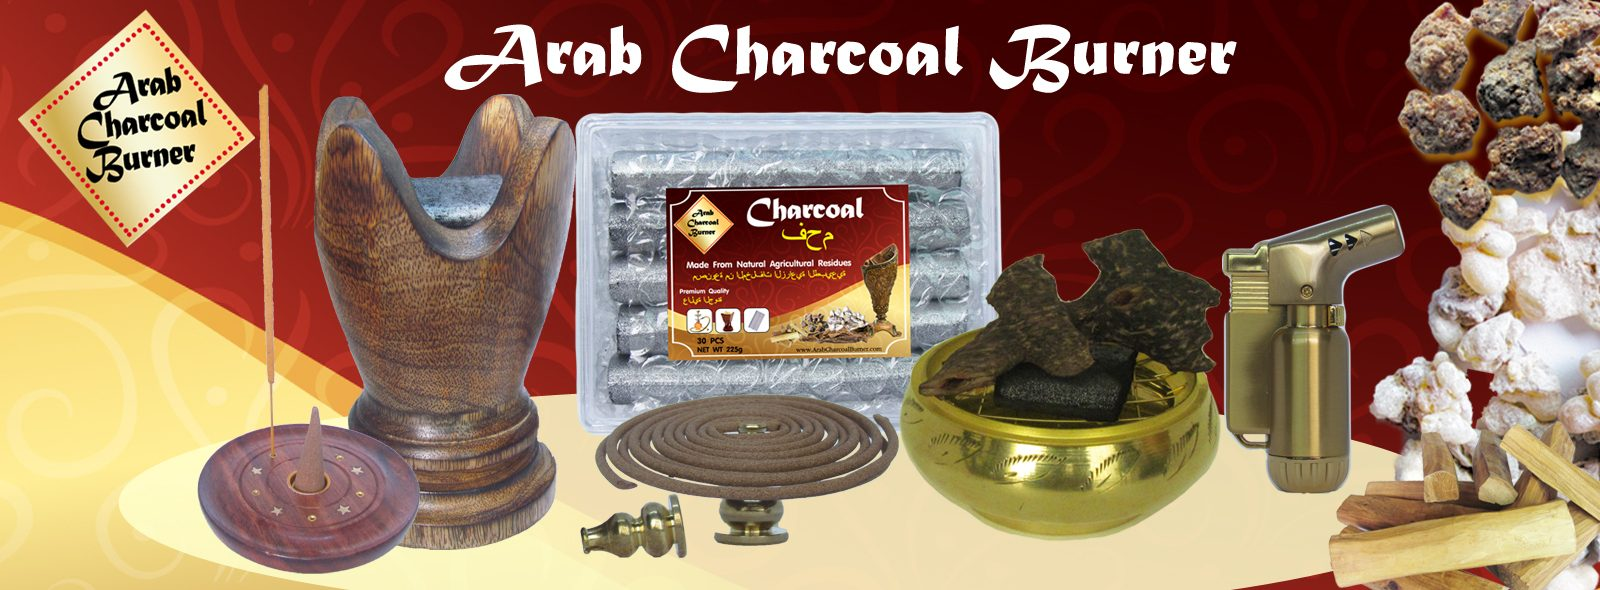 ArabCharcoalBurner – Premium Wood & Brass Charcoal Burner, Incense Burner, Incense Holder, Natural Charcoal